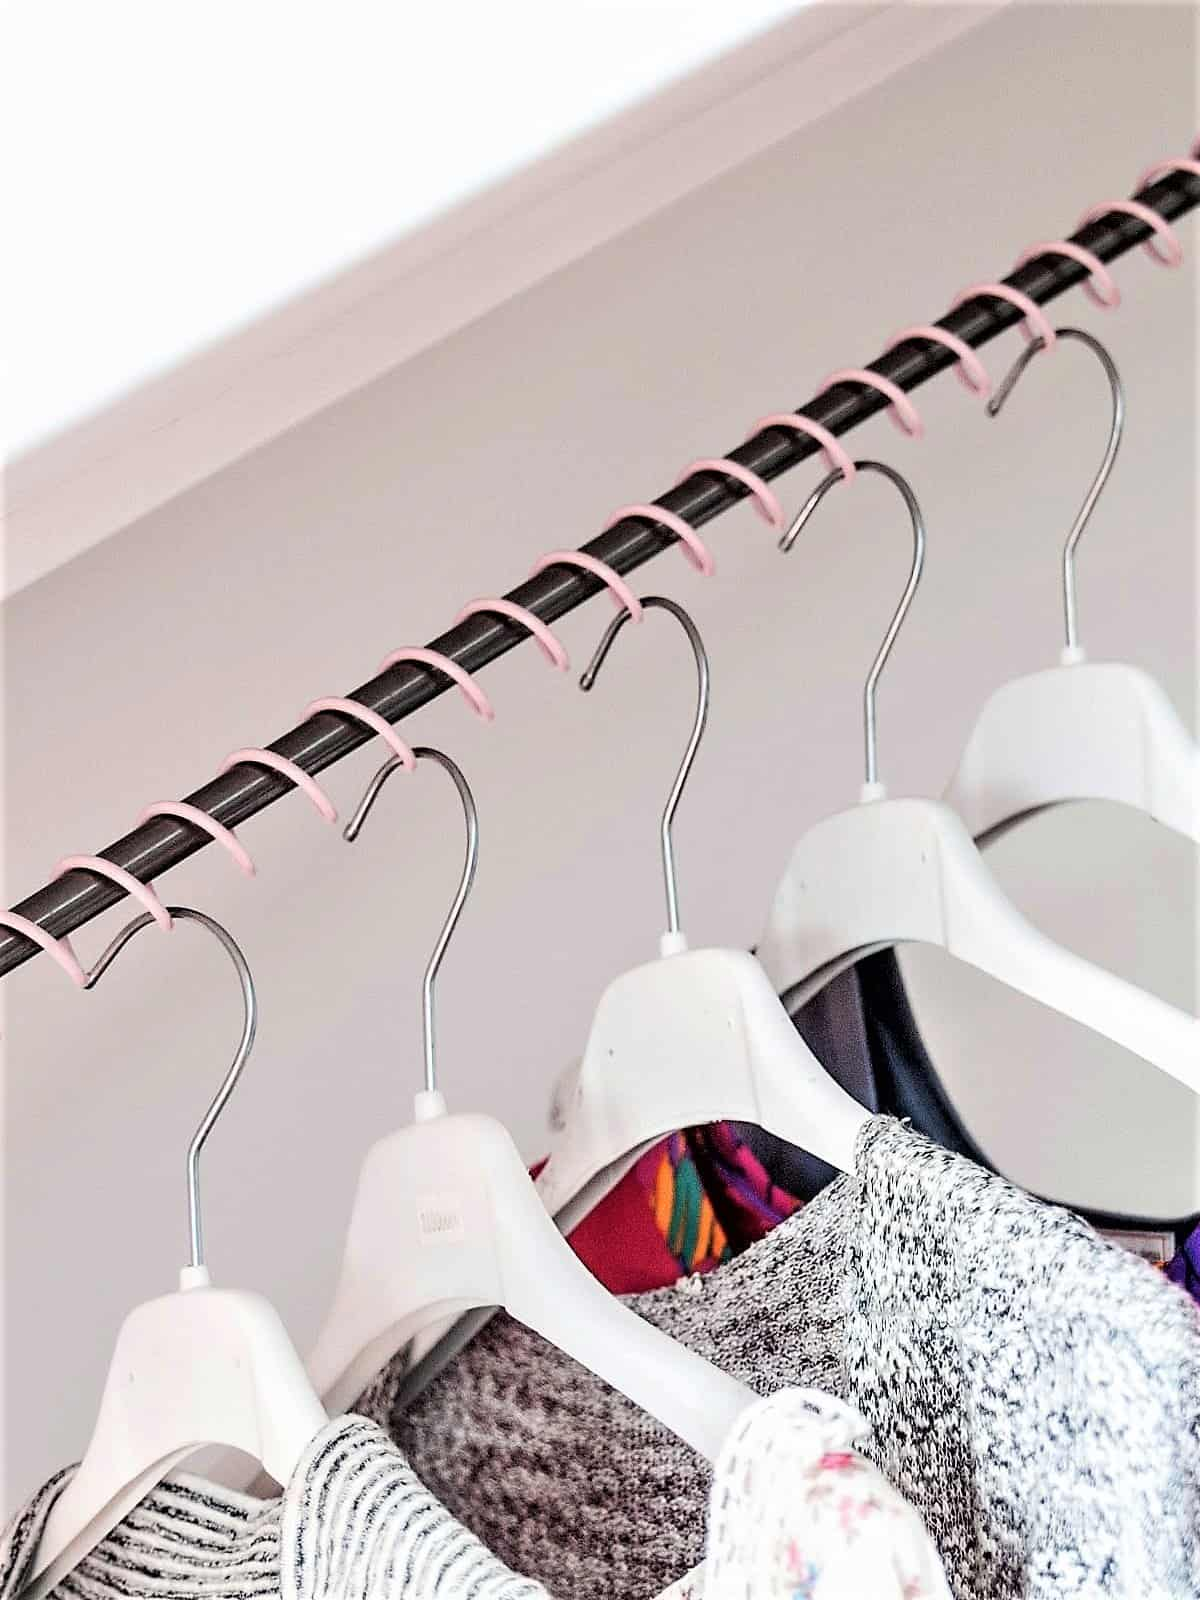 Zebedee Any Angle Hanging Rail - Millennial Pink - Shown with coat hangers